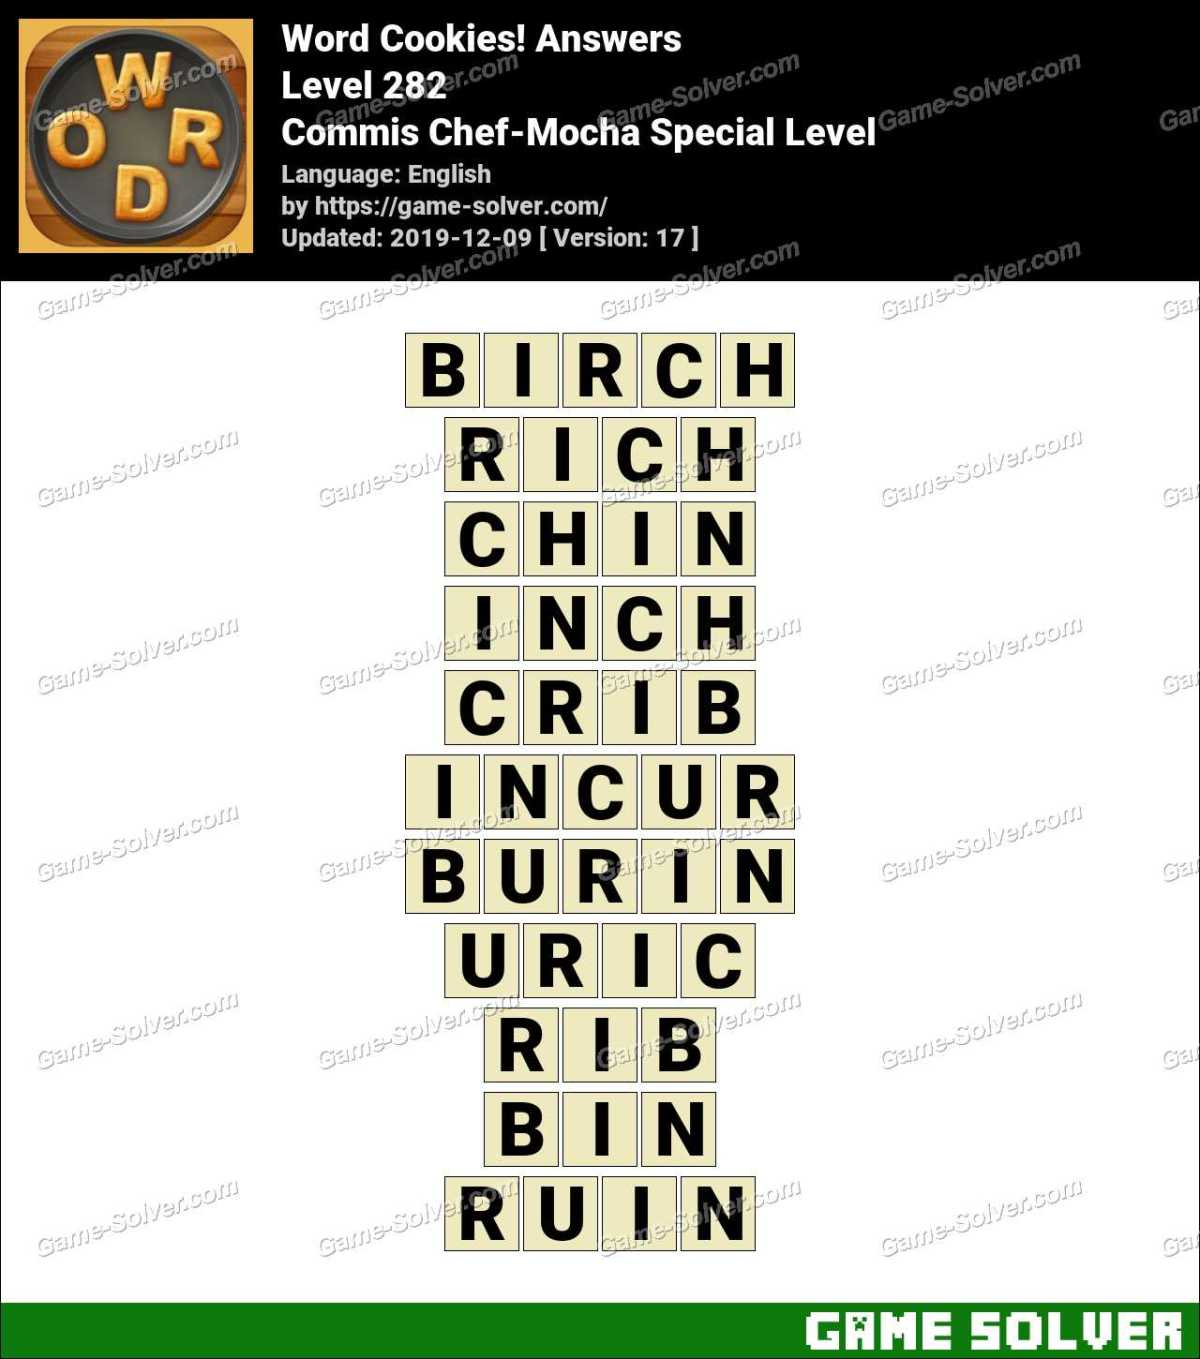 Word Cookies Commis Chef-Mocha Special Level Answers